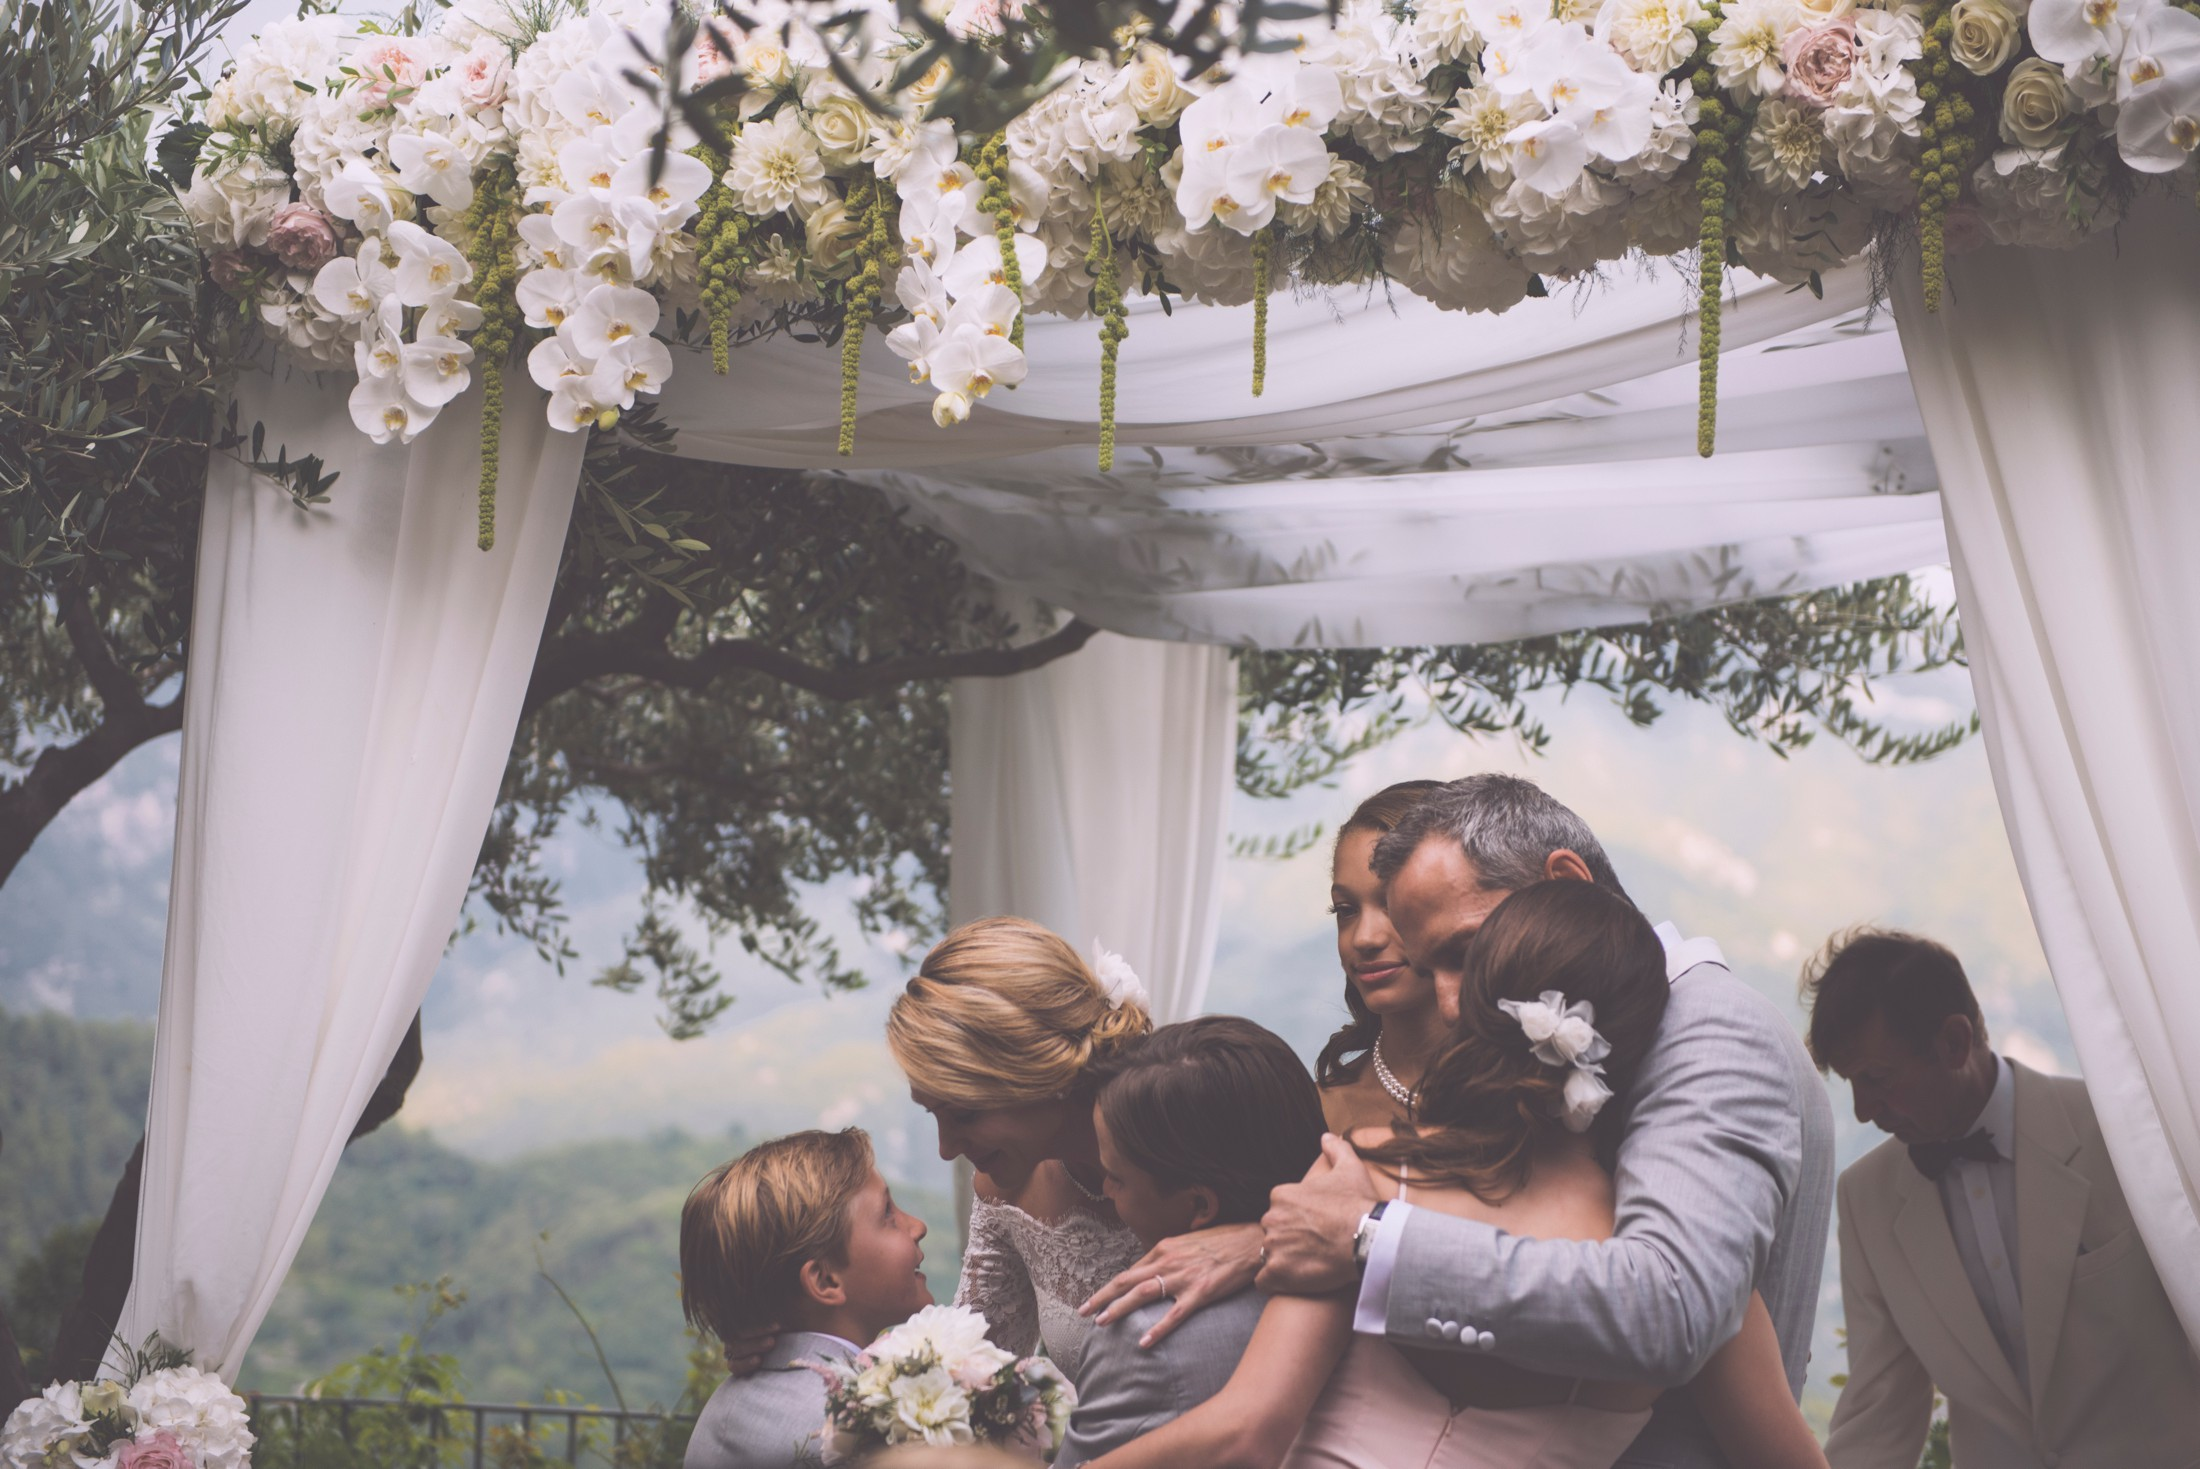 adriana alfano the bride and the groom holding their children after the wedding ceremony at hotel caruso ravello italy